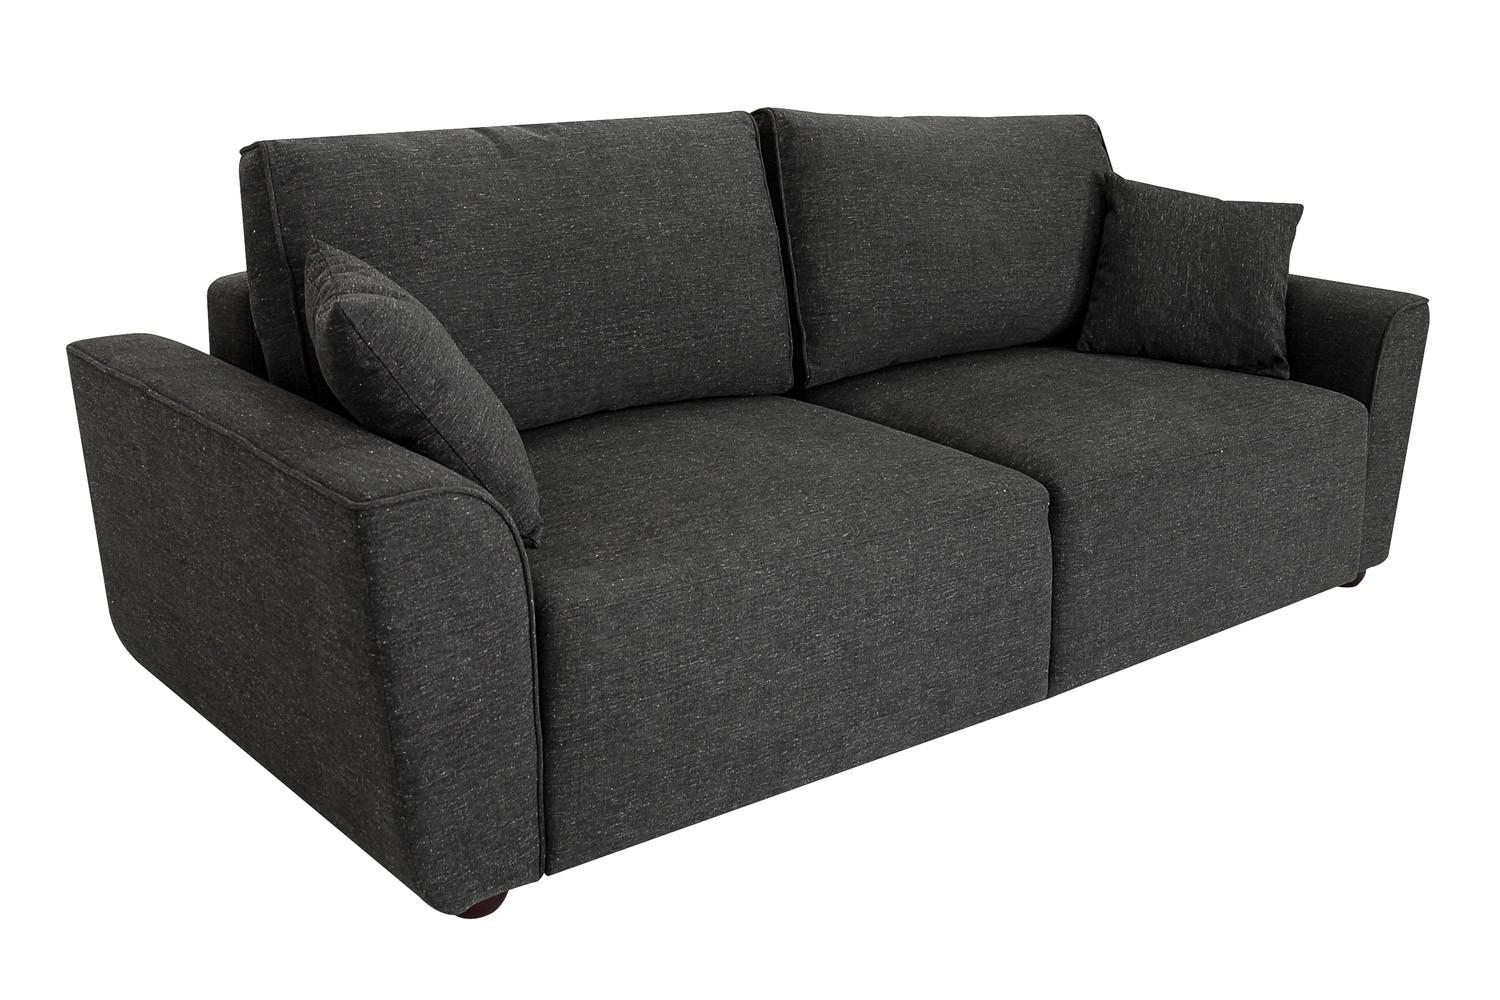 Queen Wallhugger Sofa Bed | Tweed Fabric Sofa Sleeper Evander pertaining to Queen Sofa Beds